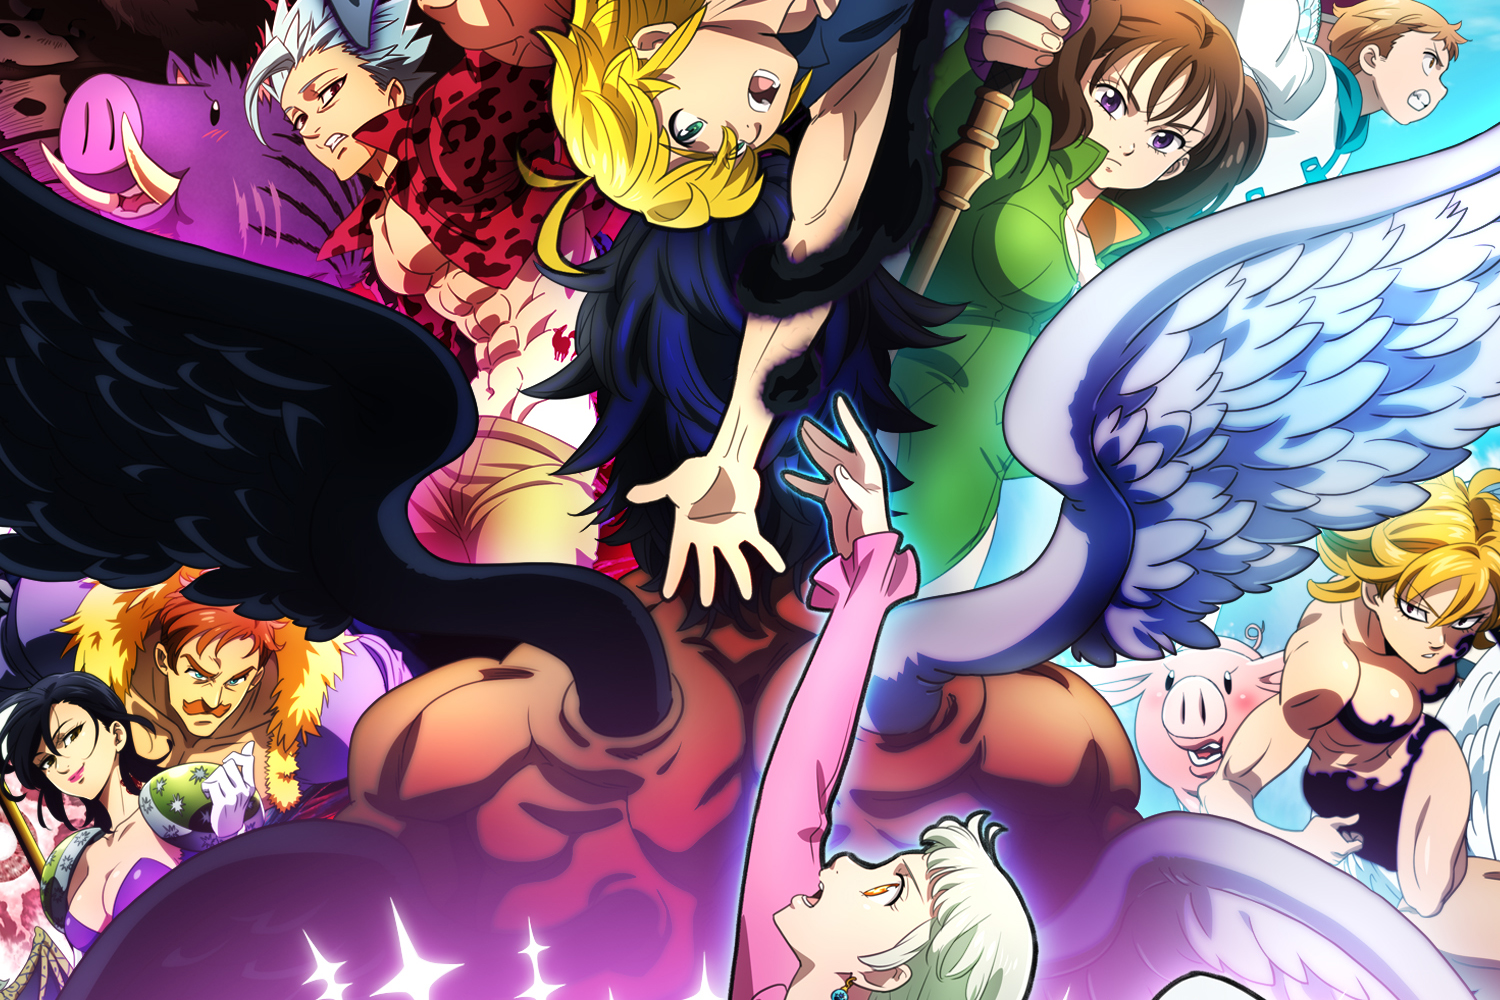 Most Anticipated Anime Coming Out in January 2021 - The Seven Deadly Sins: Dragon's Judgement